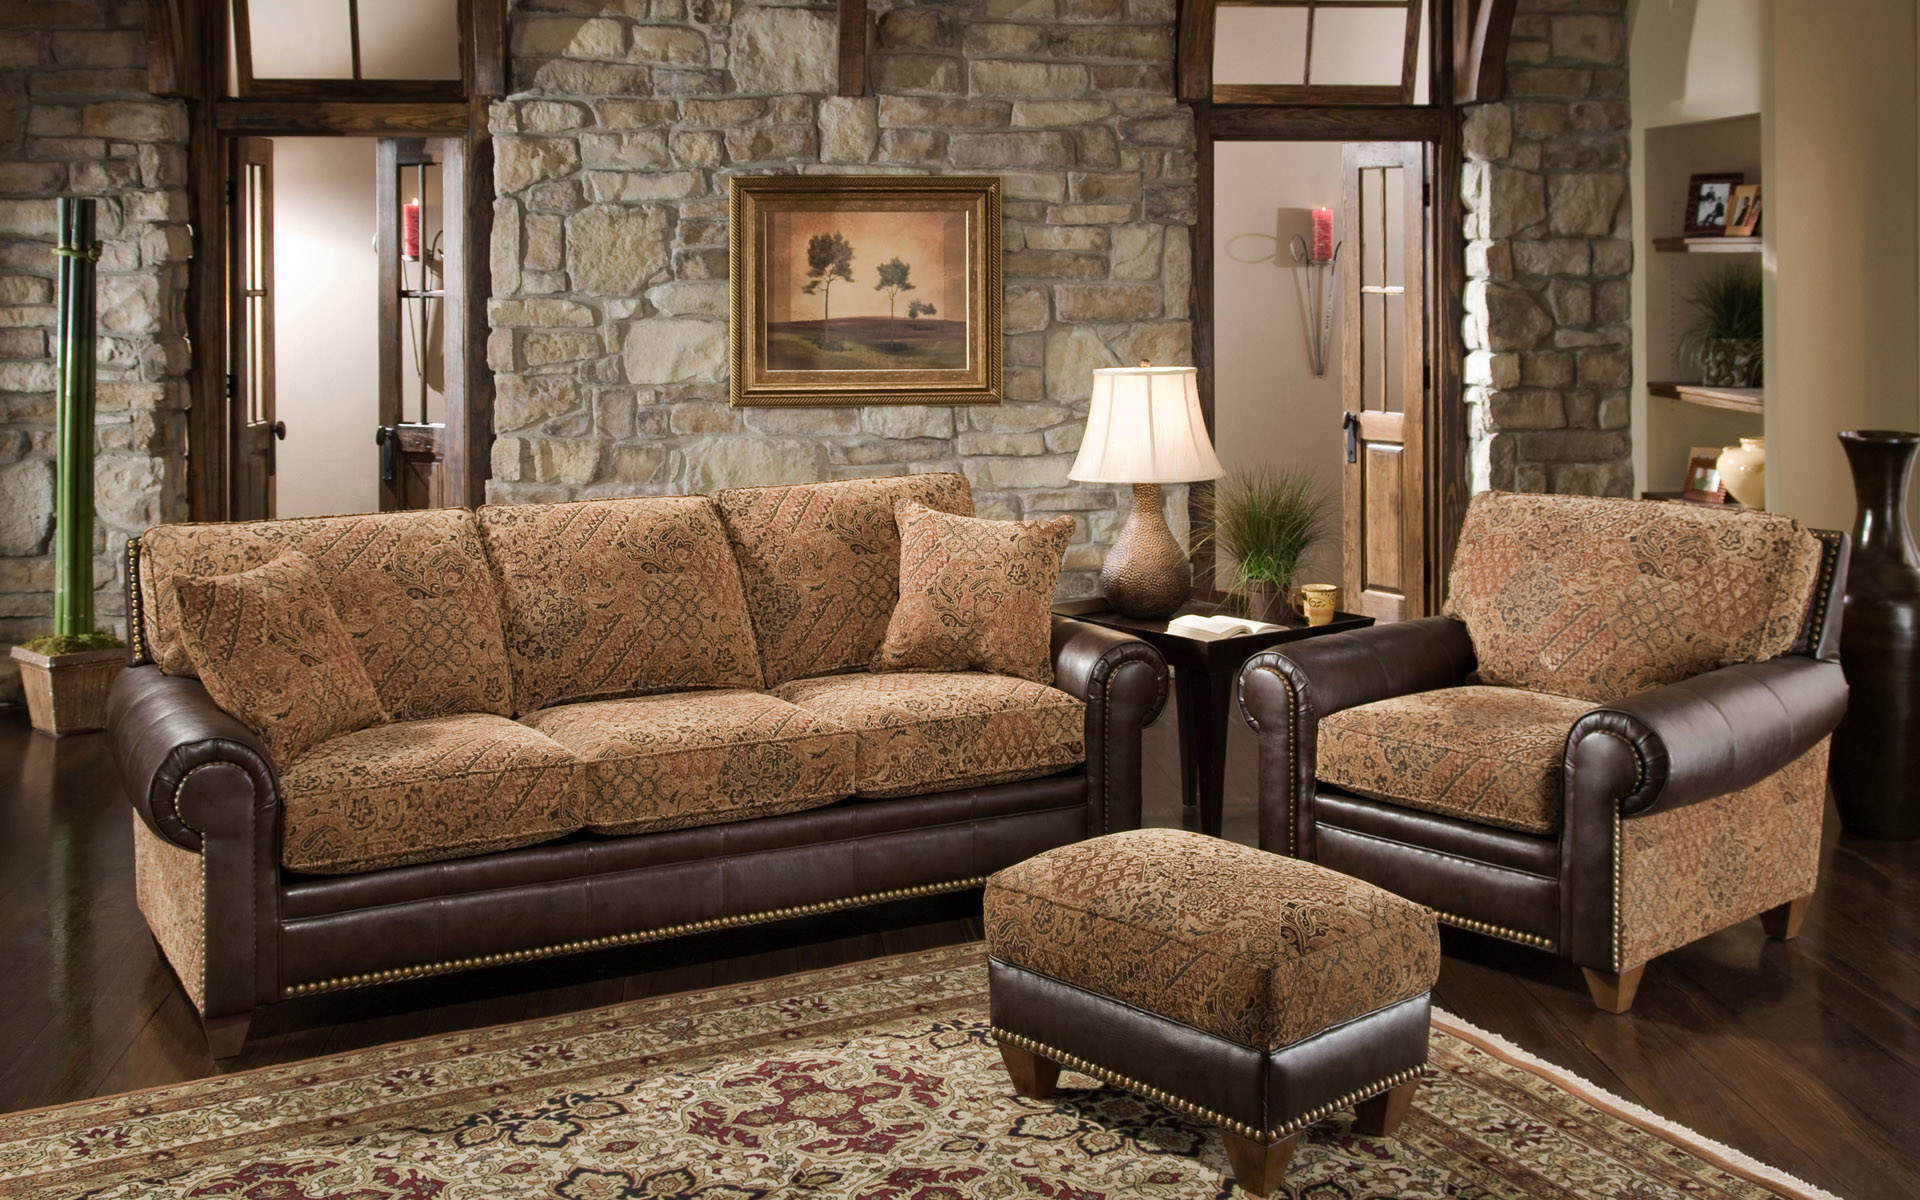 sofa sets for hall vine velvet furniture full hd wallpaper and background image